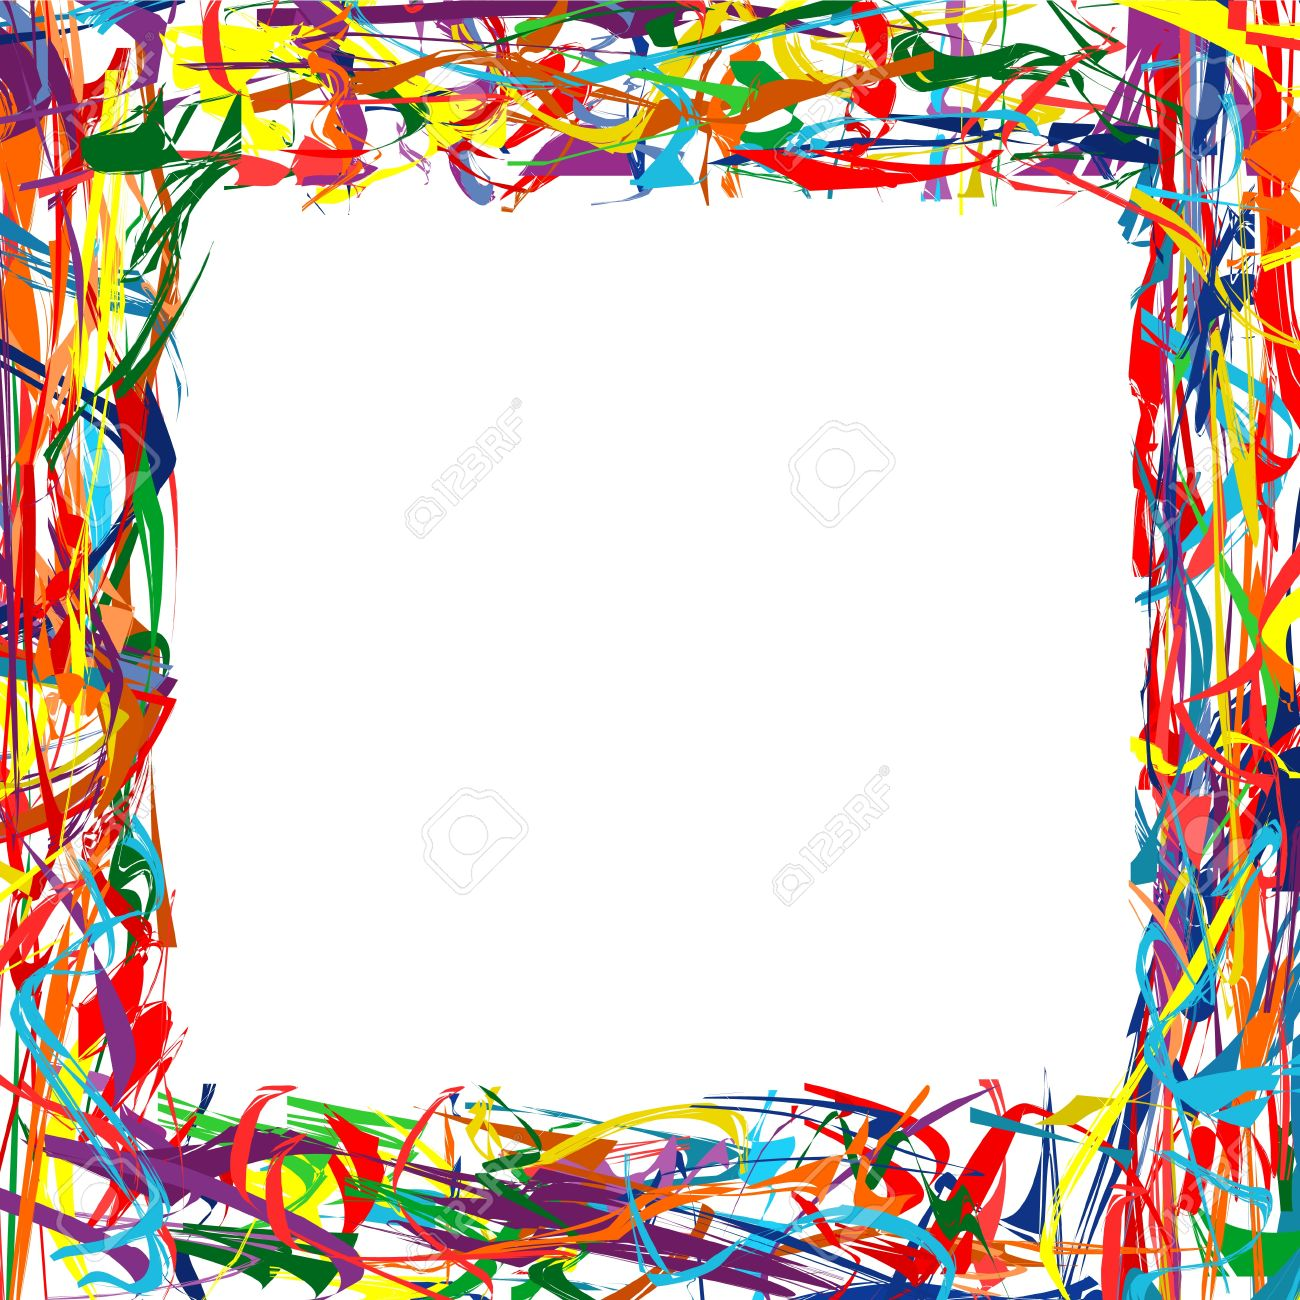 Abstract Rainbow Curved Lines Frame Colorful Background Royalty Free ...